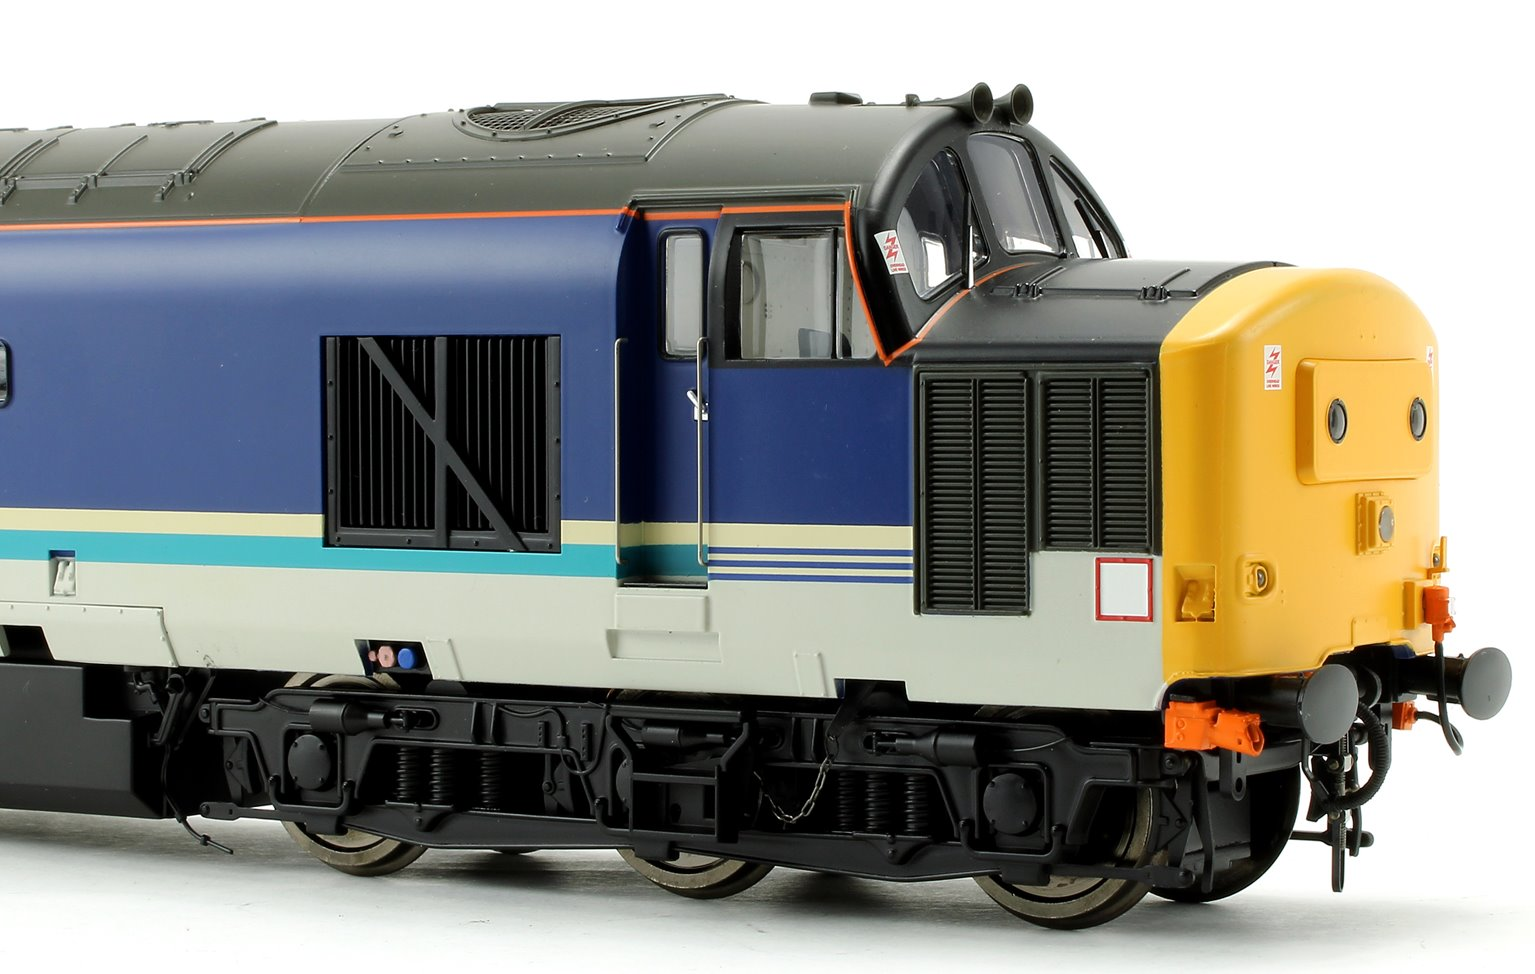 Class 37/4 Regional Railways Diesel Locomotive (Unnumbered)